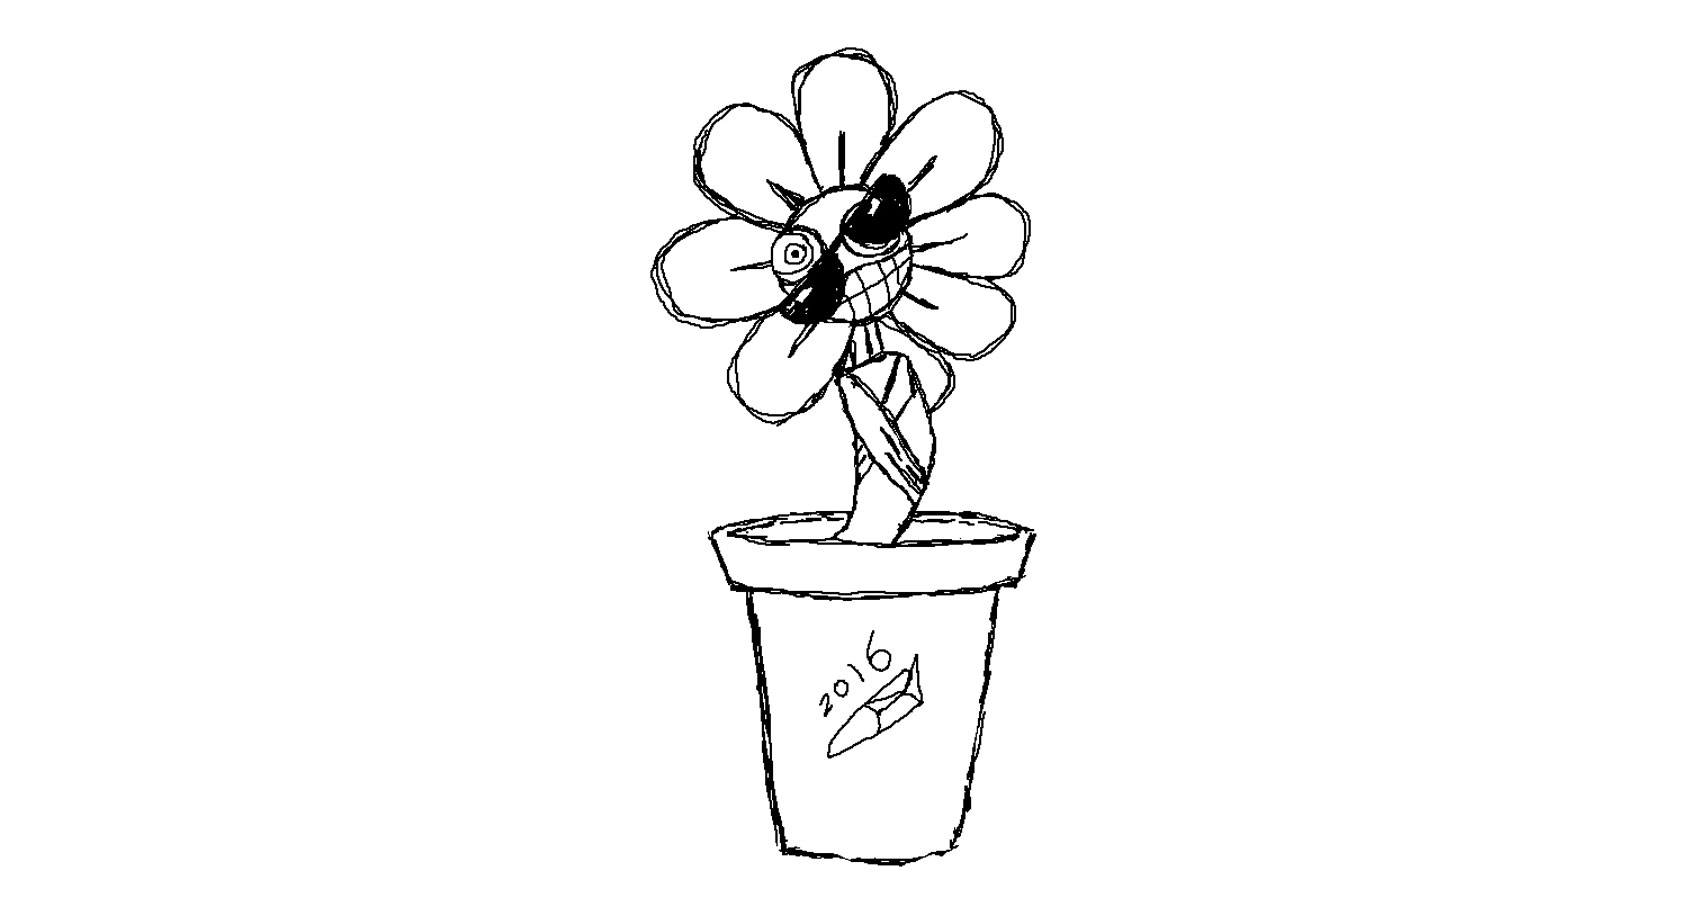 Crazy Flower by Robyn MacKinnon at Spillwords.com